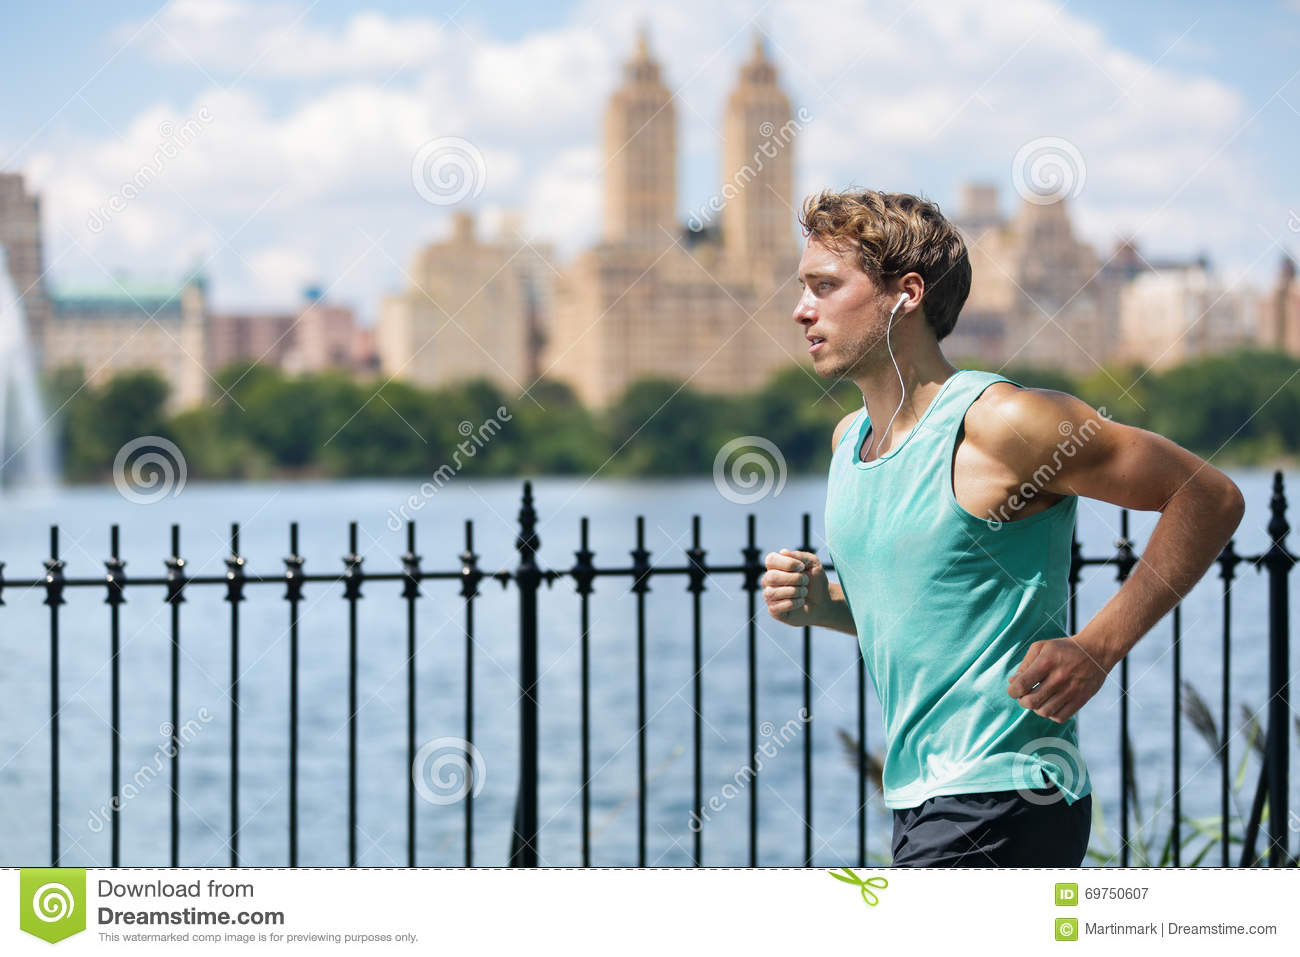 Coureur masculin fonctionnant dans le Central Park de New York City